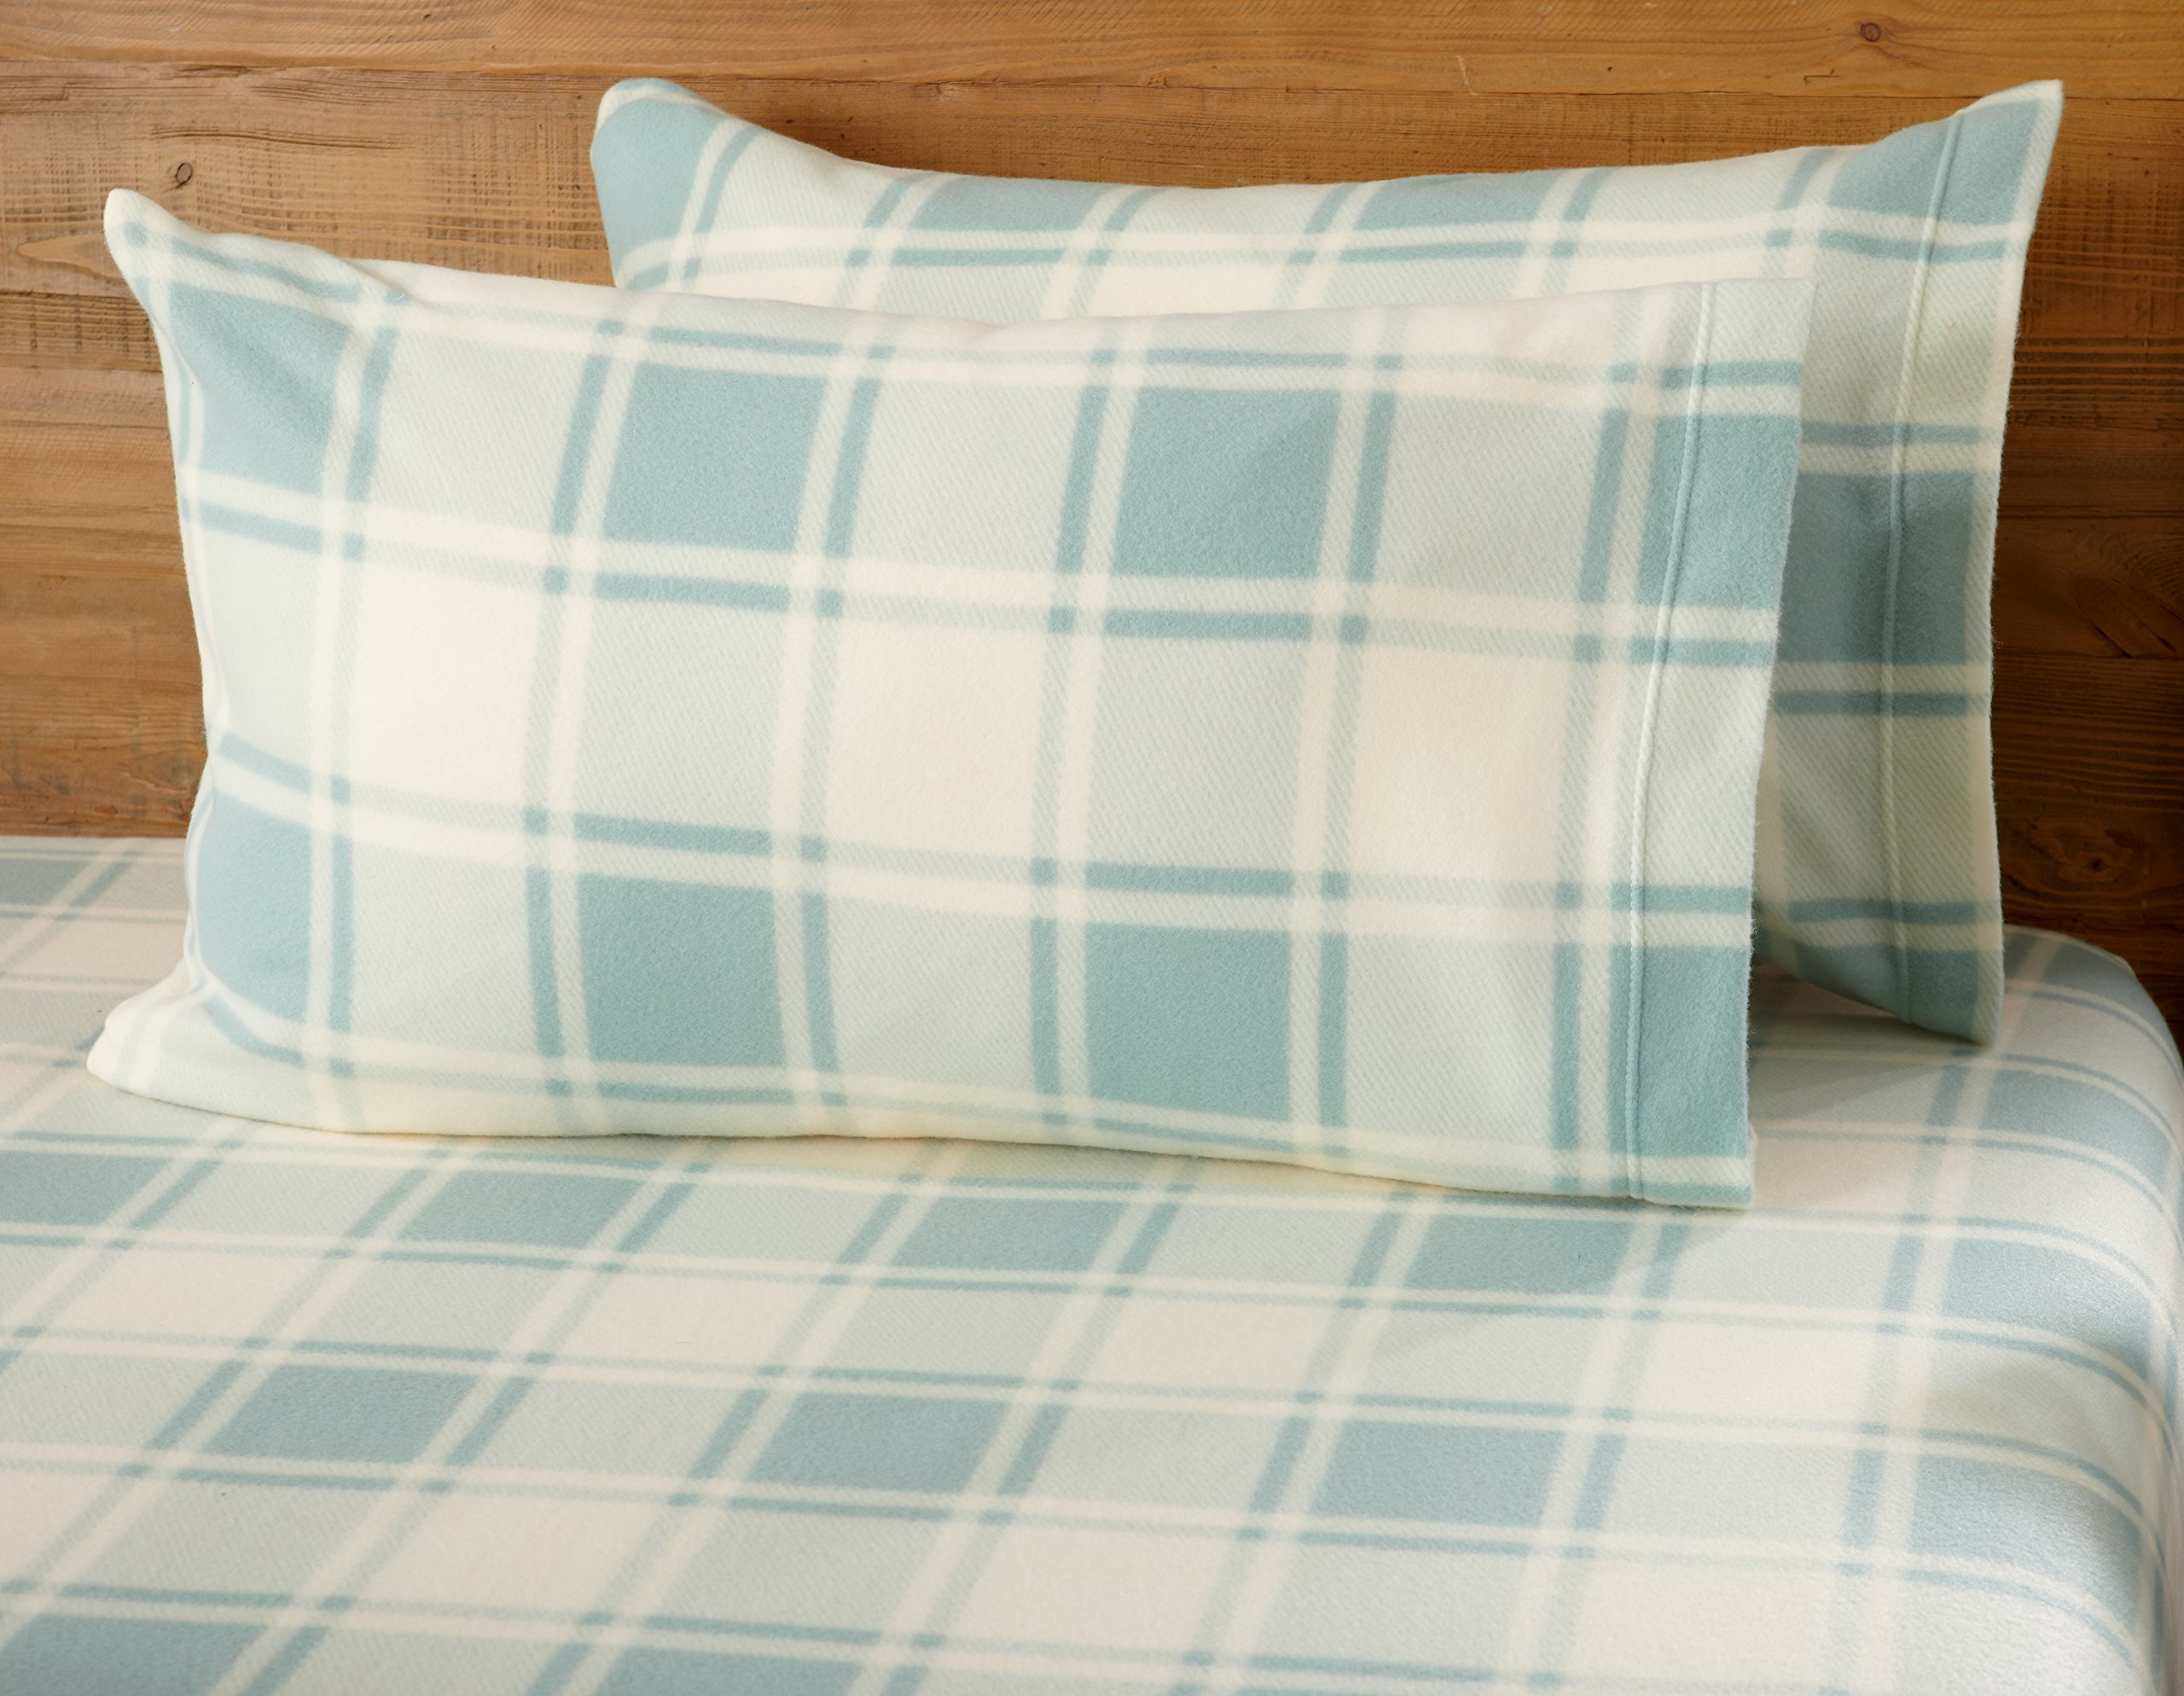 Great Bay Home Super Soft Extra Plush Plaid Polar Fleece Sheet Set. Cozy, Warm, Durable, Smooth, Breathable Winter Sheets with Plaid Pattern. Dara Collection By Brand. (Queen, Harbor Blue) by Great Bay Home (Image #1)